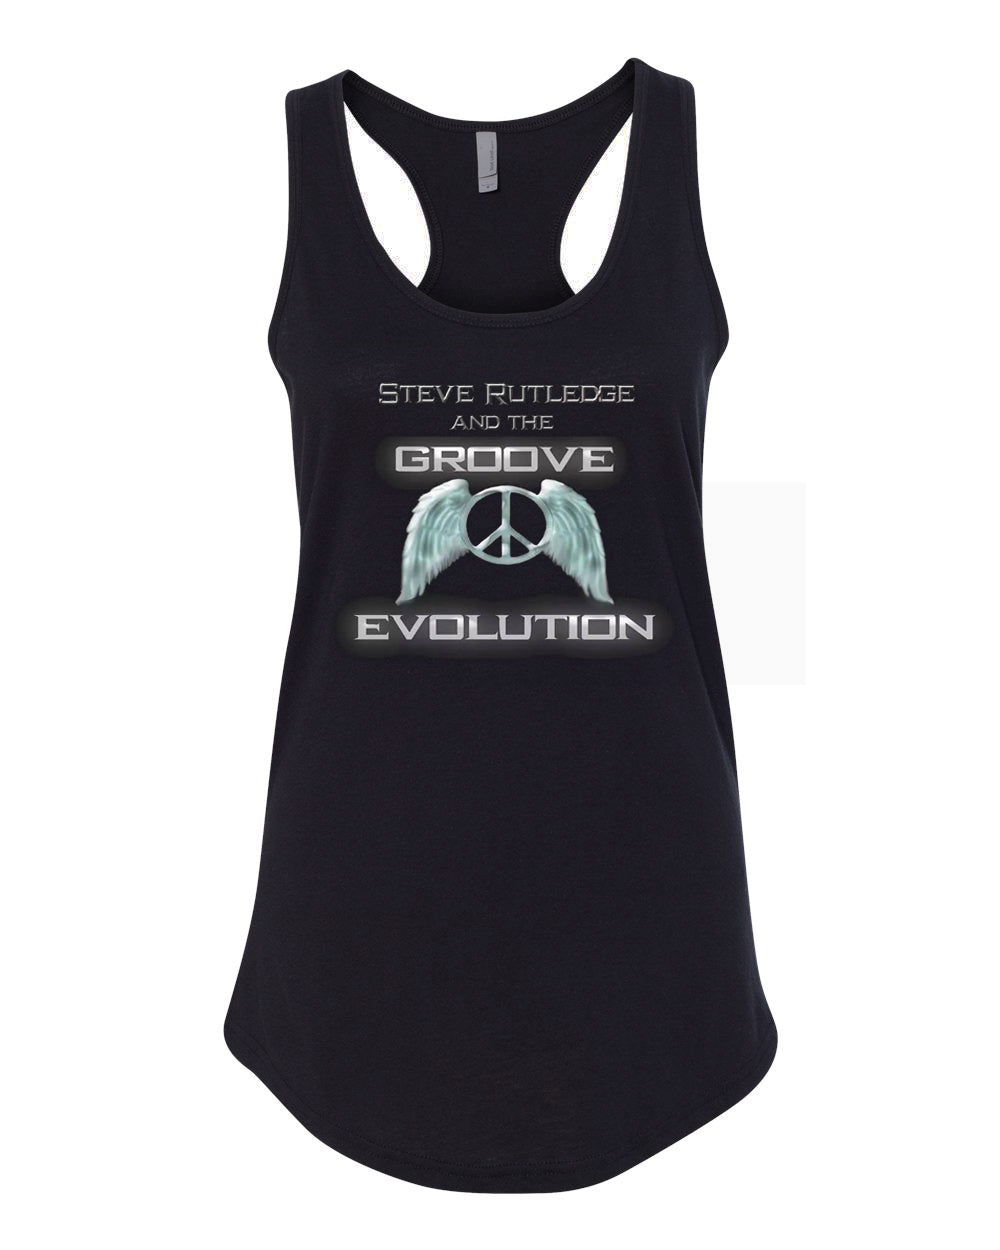 Steve Rutledge Women's Tank